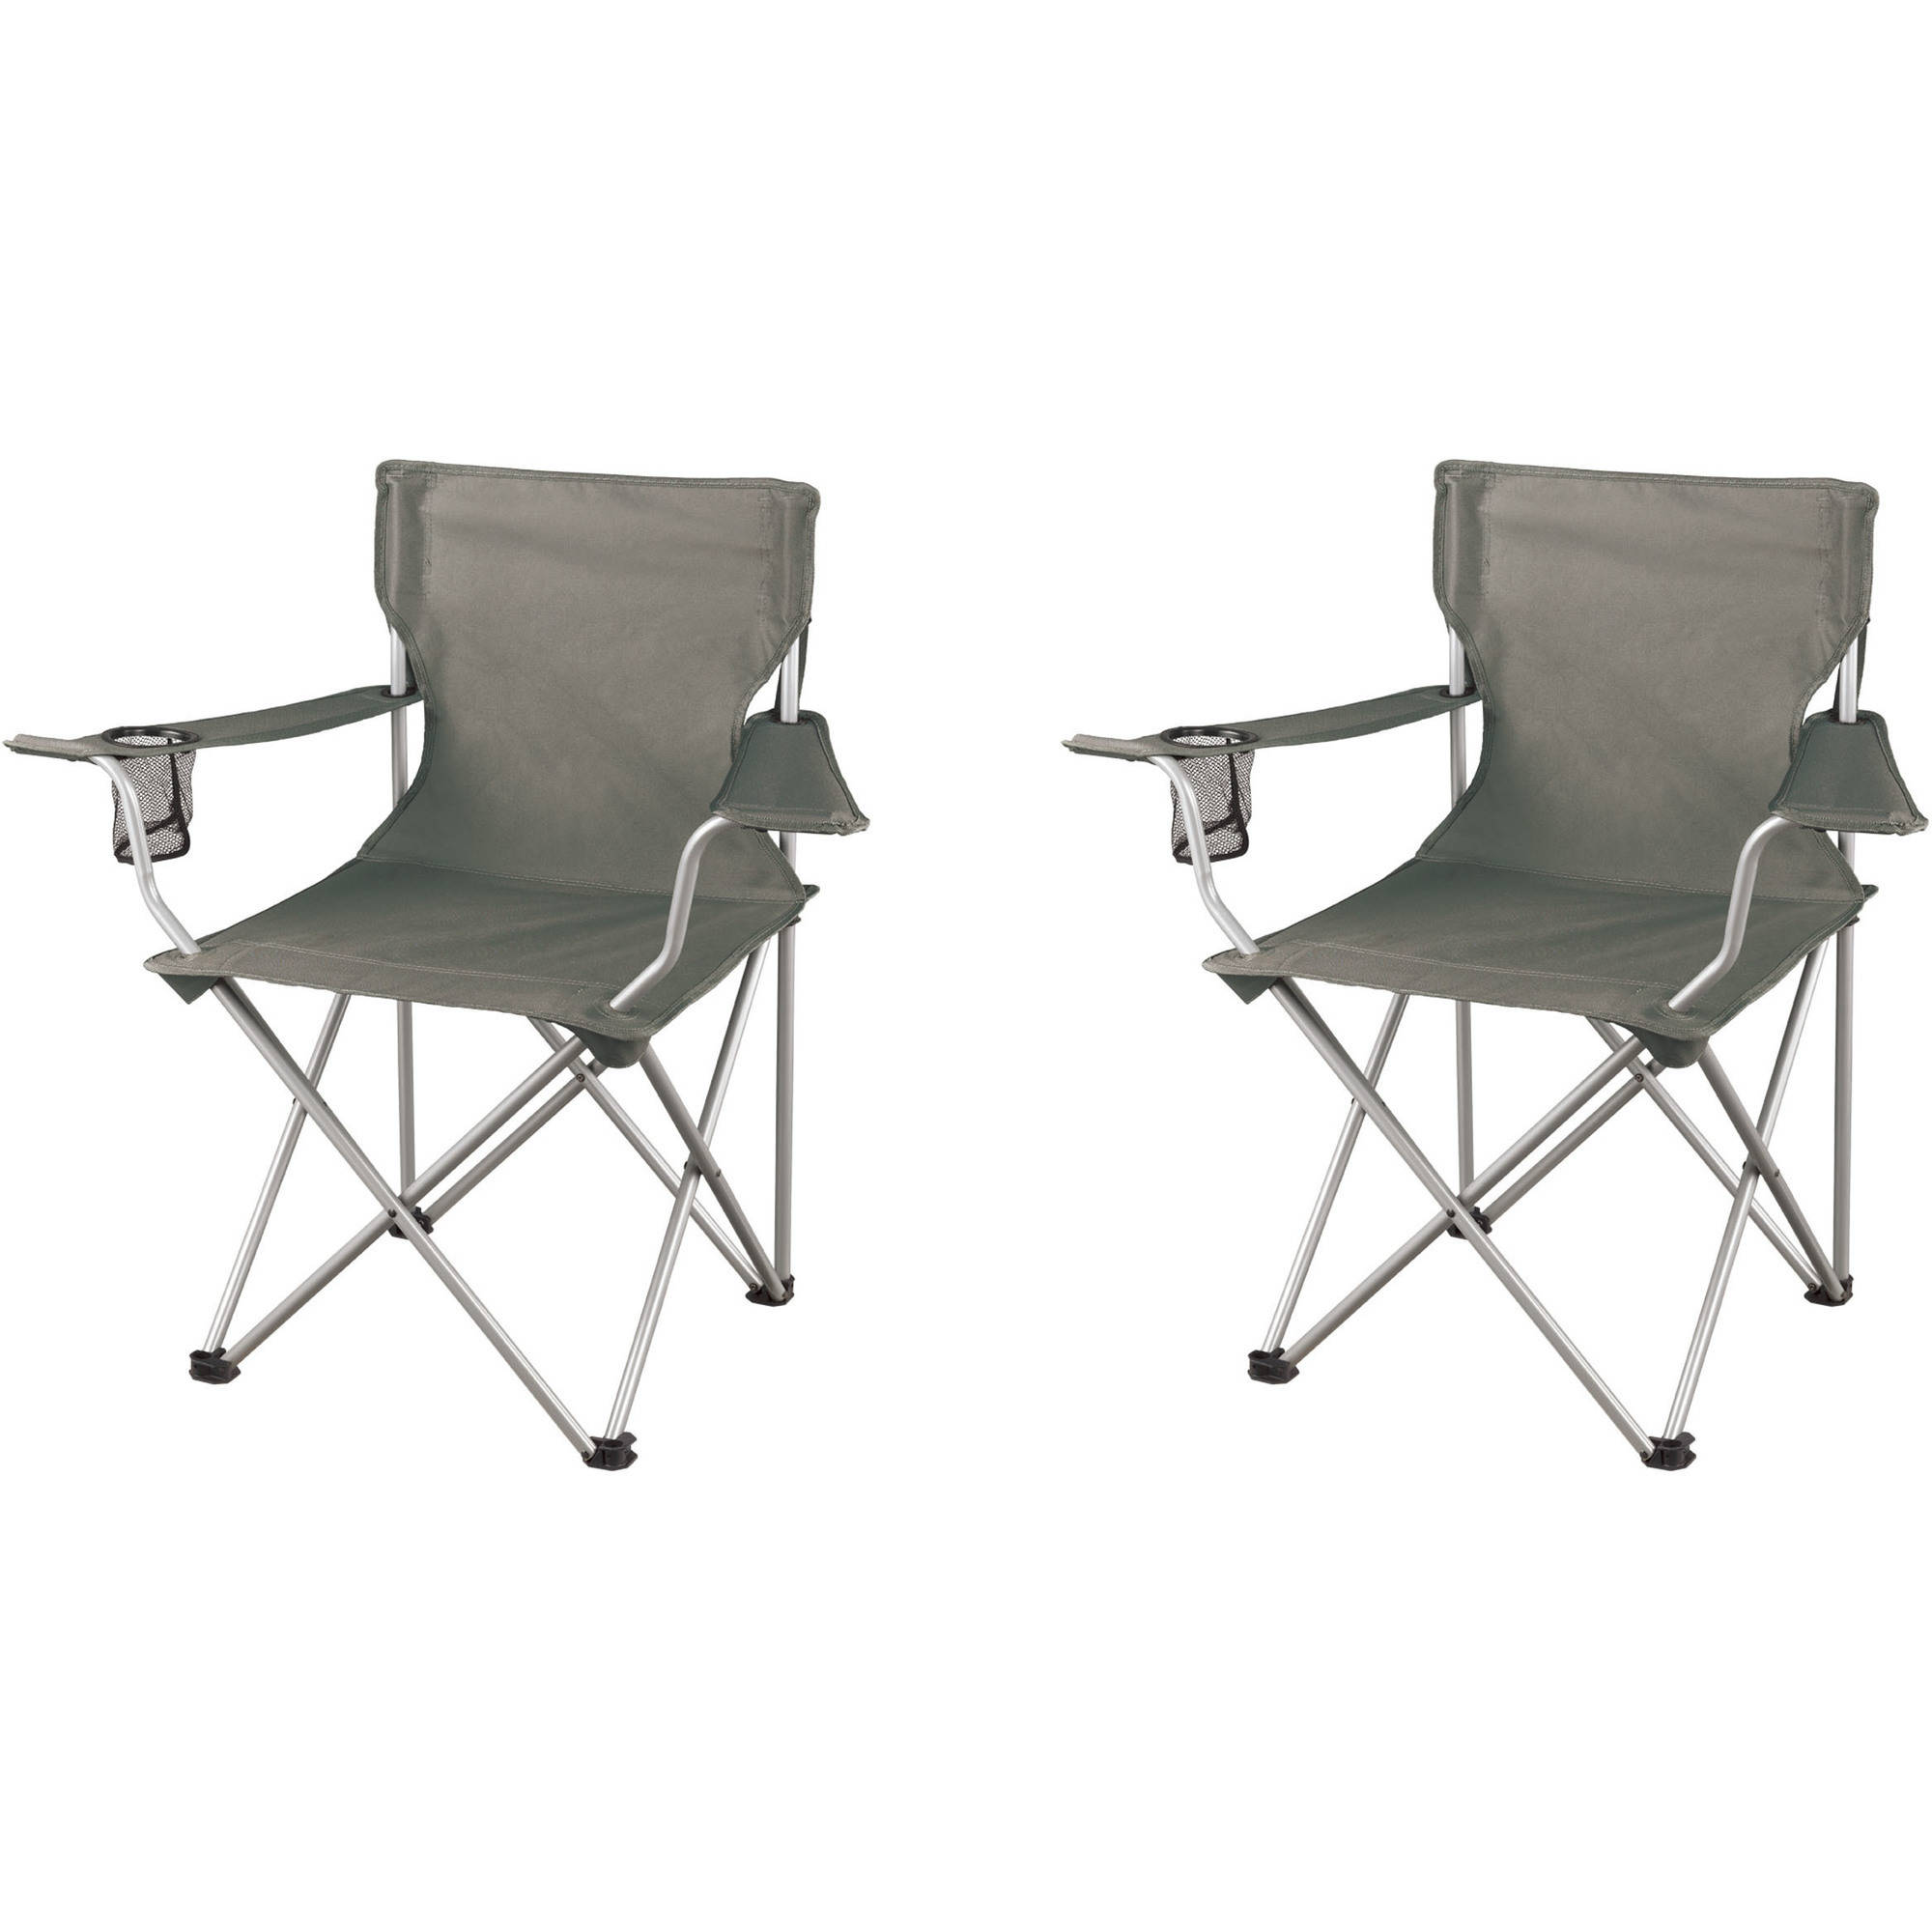 Ozark Trail Regular Folding Camping Armchairs Grey 2 Pack